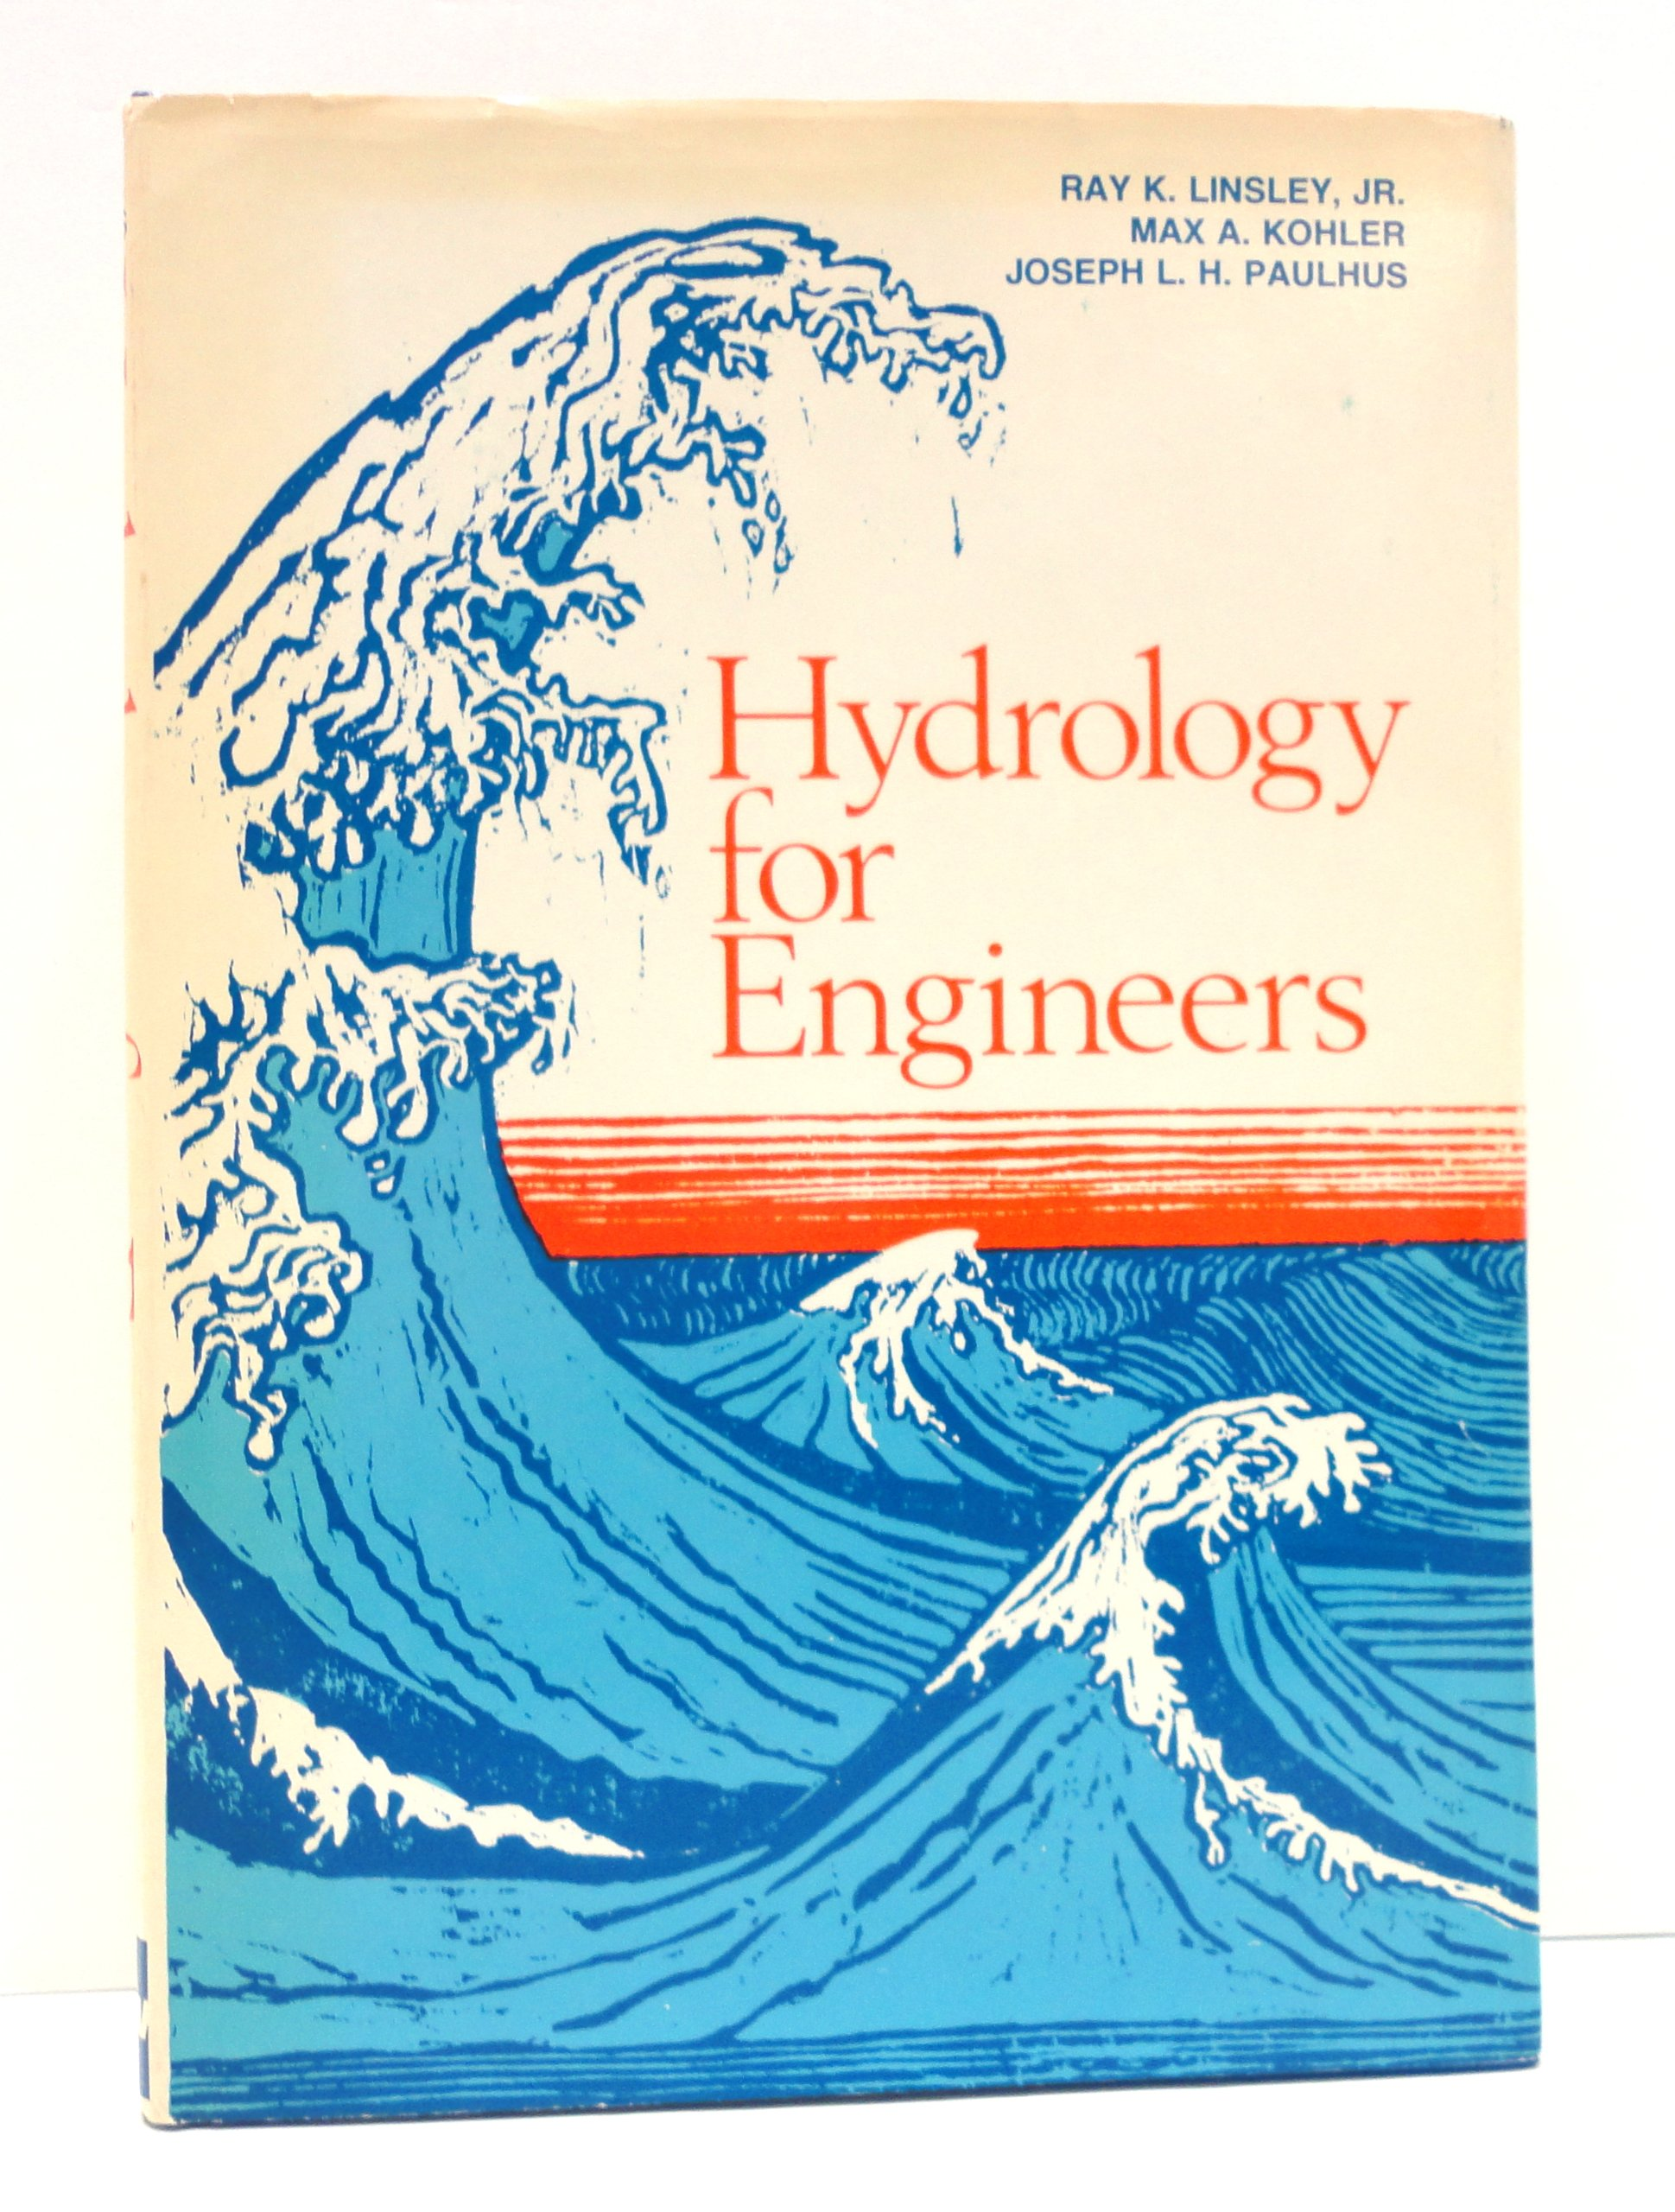 Buy Hydrology for Engineers (McGraw-Hill Series in Water Resources and  Environmental Engineering) Book Online at Low Prices in India | Hydrology  for Engineers (McGraw-Hill Series in Water Resources and Environmental  Engineering) Reviews